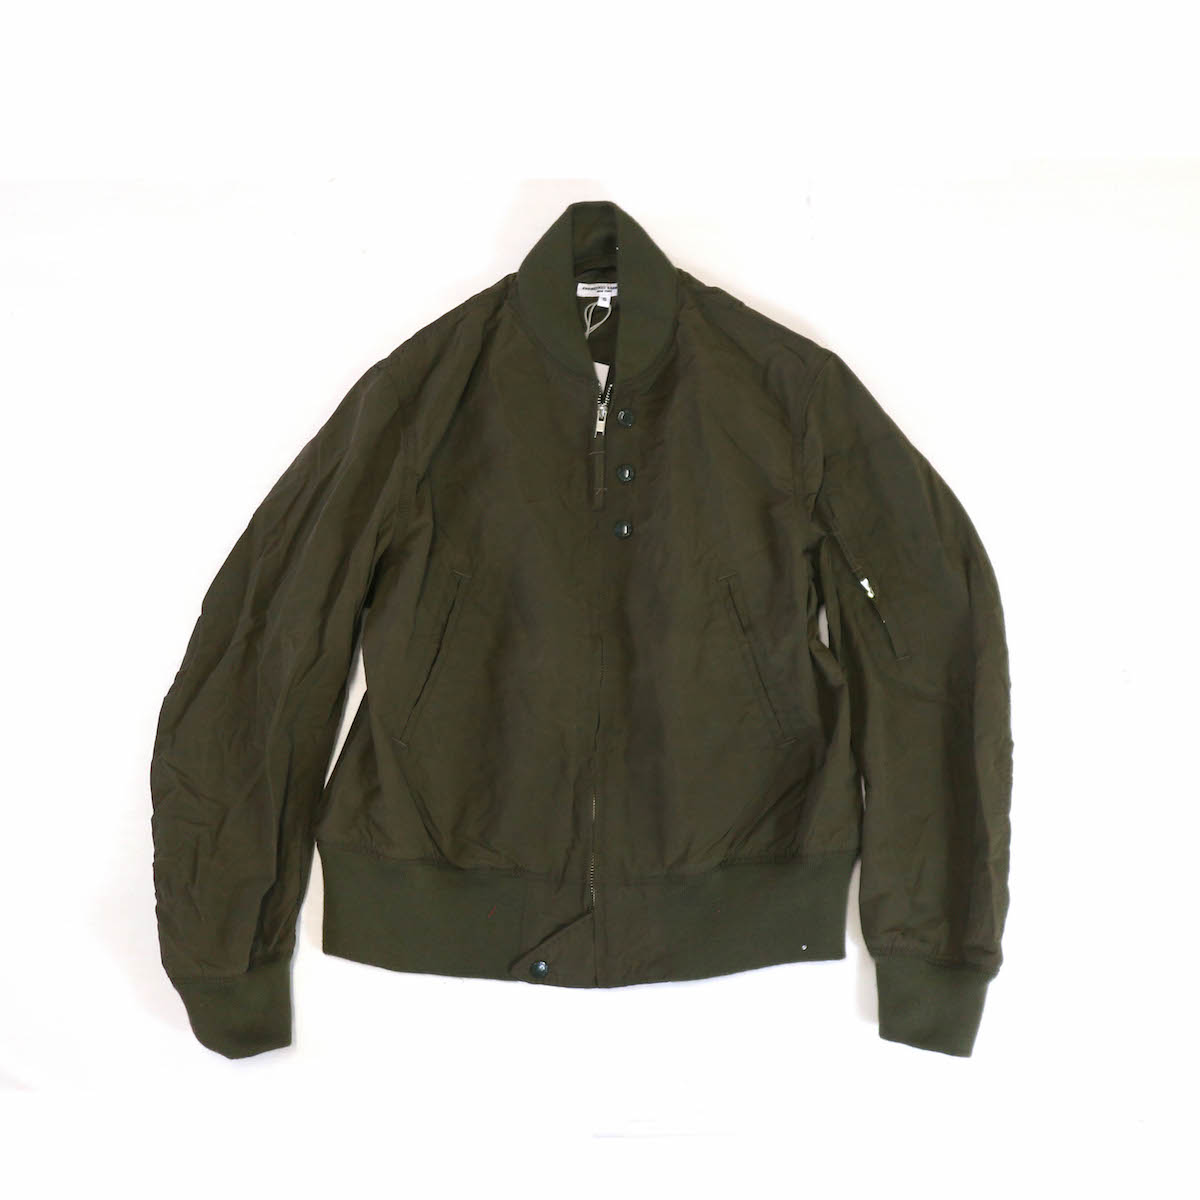 Engineered Garments / Aviator Jacket -4.5oz Waxed Cotton